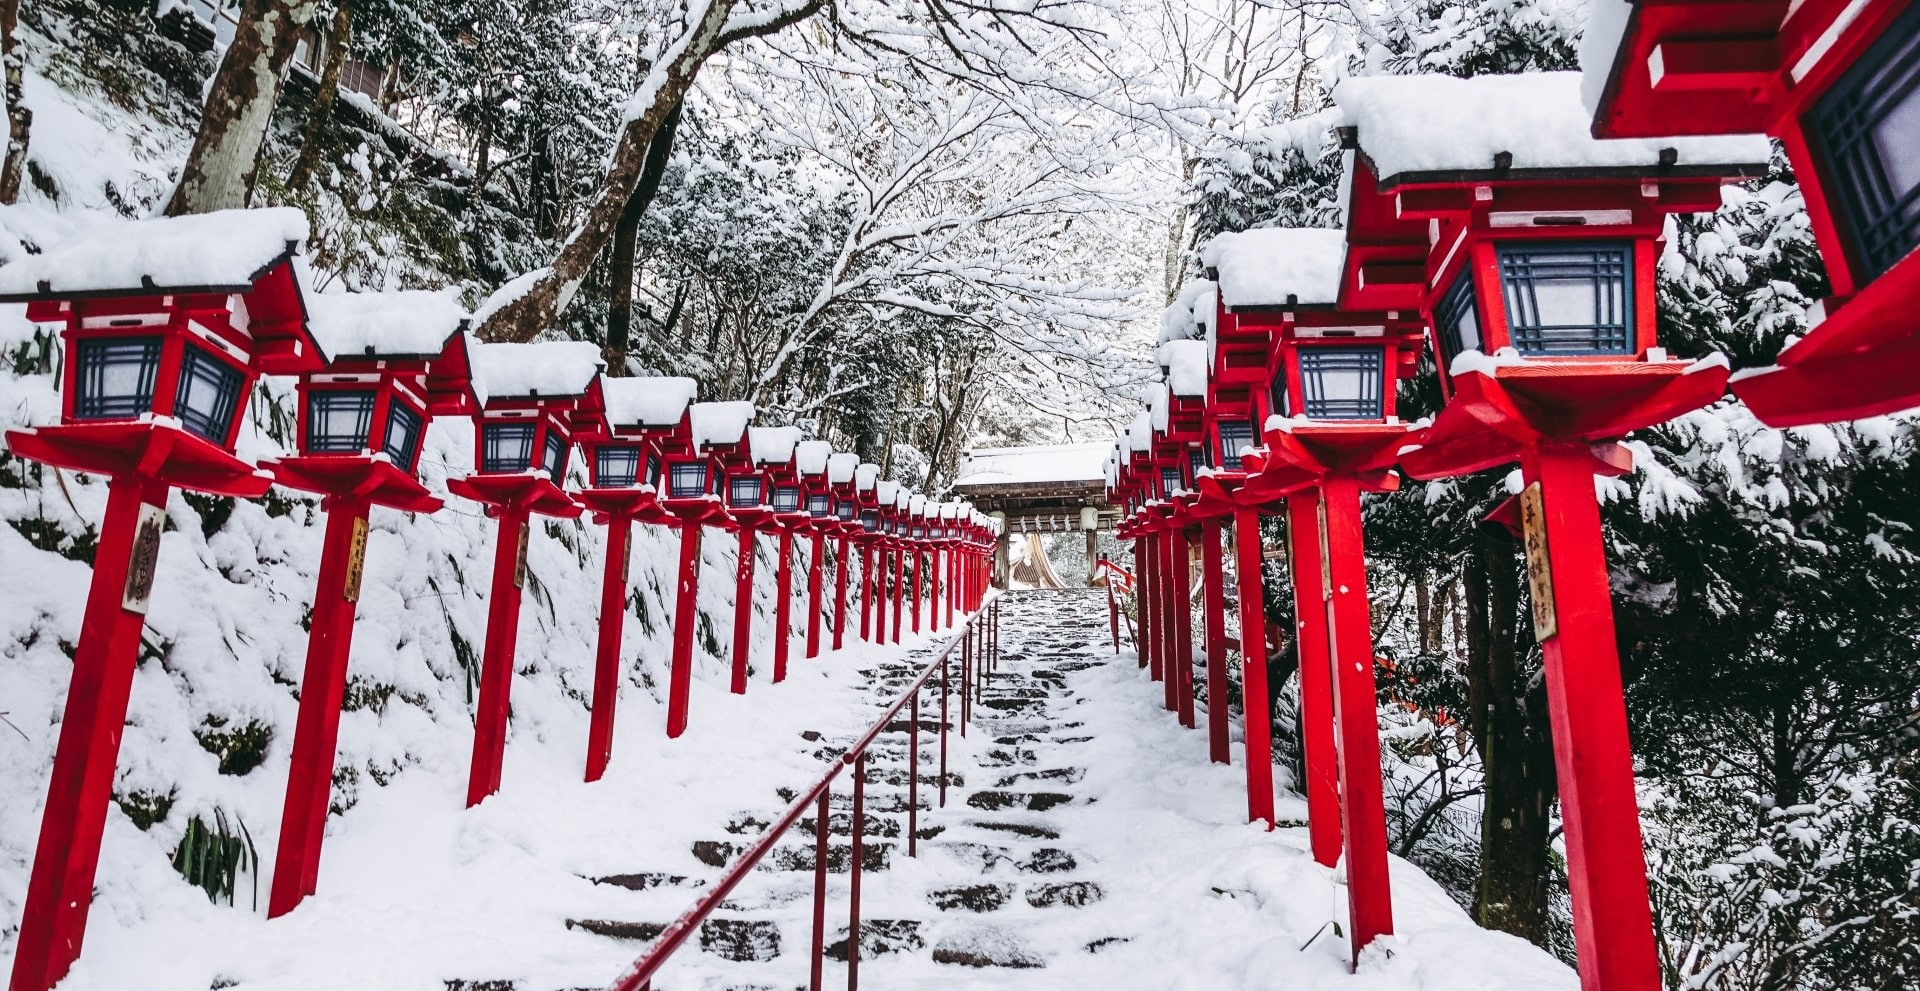 The approach of Kifune Shrine in winter